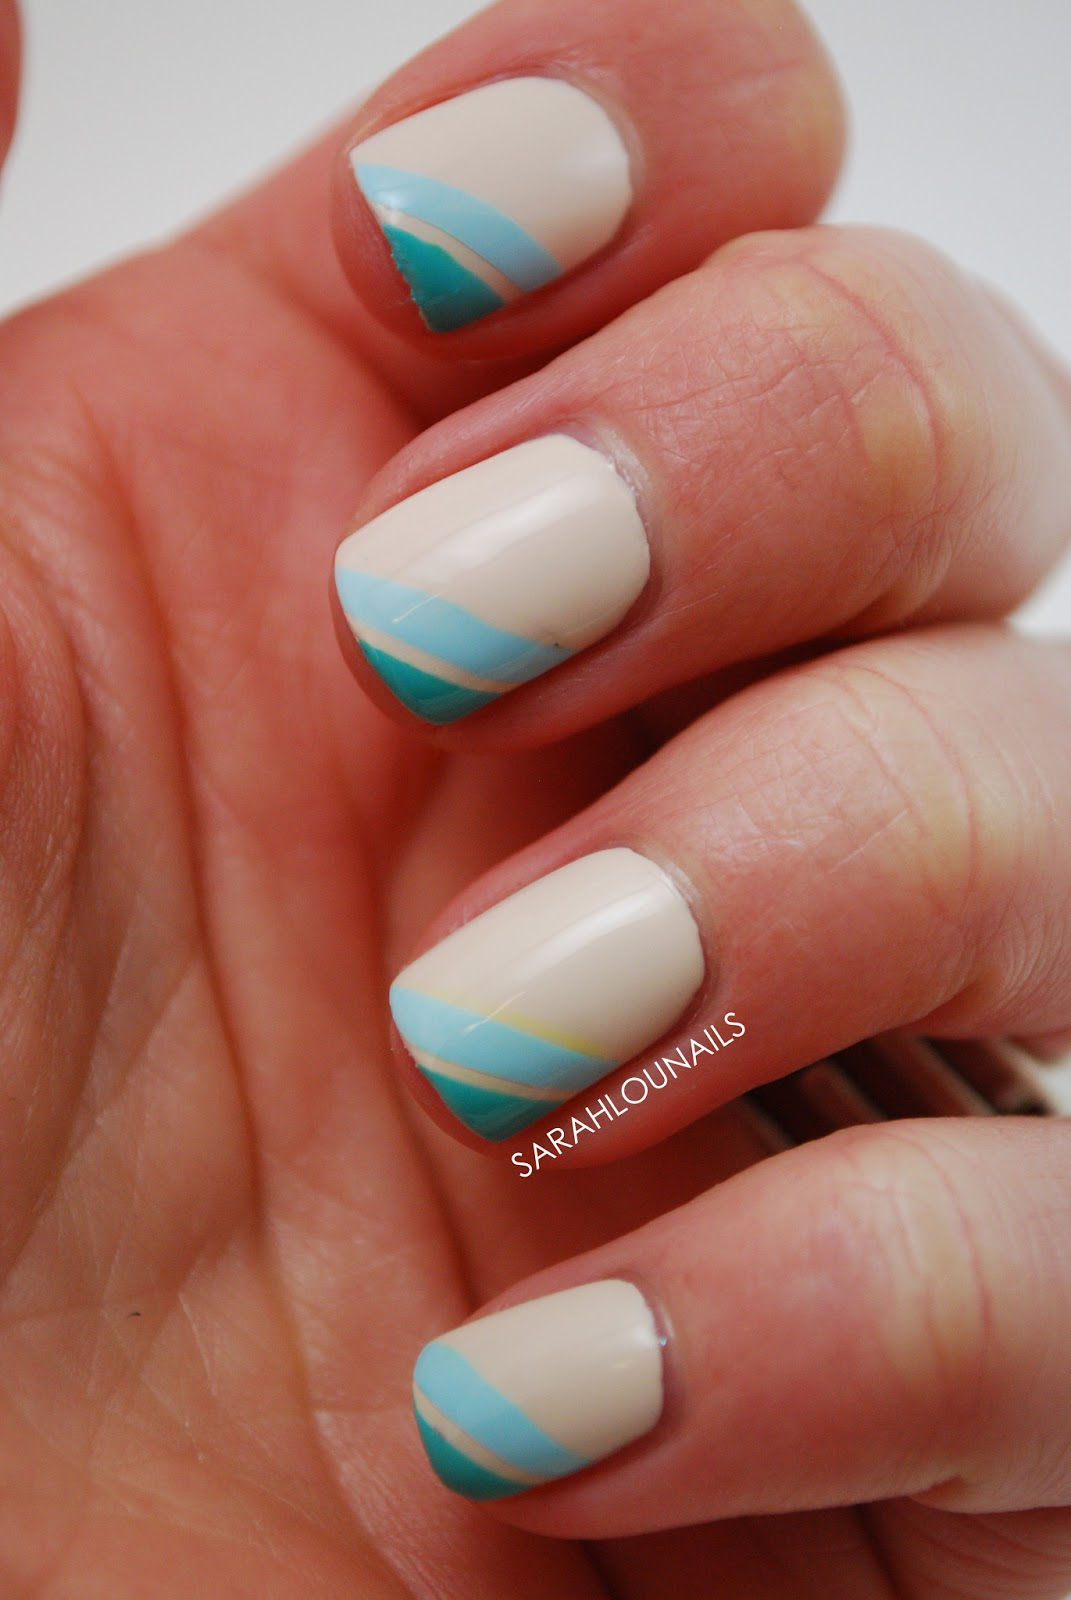 Ombre Nail Trend: Sarah Lou Nails: Nude & Blue Ombre Nails